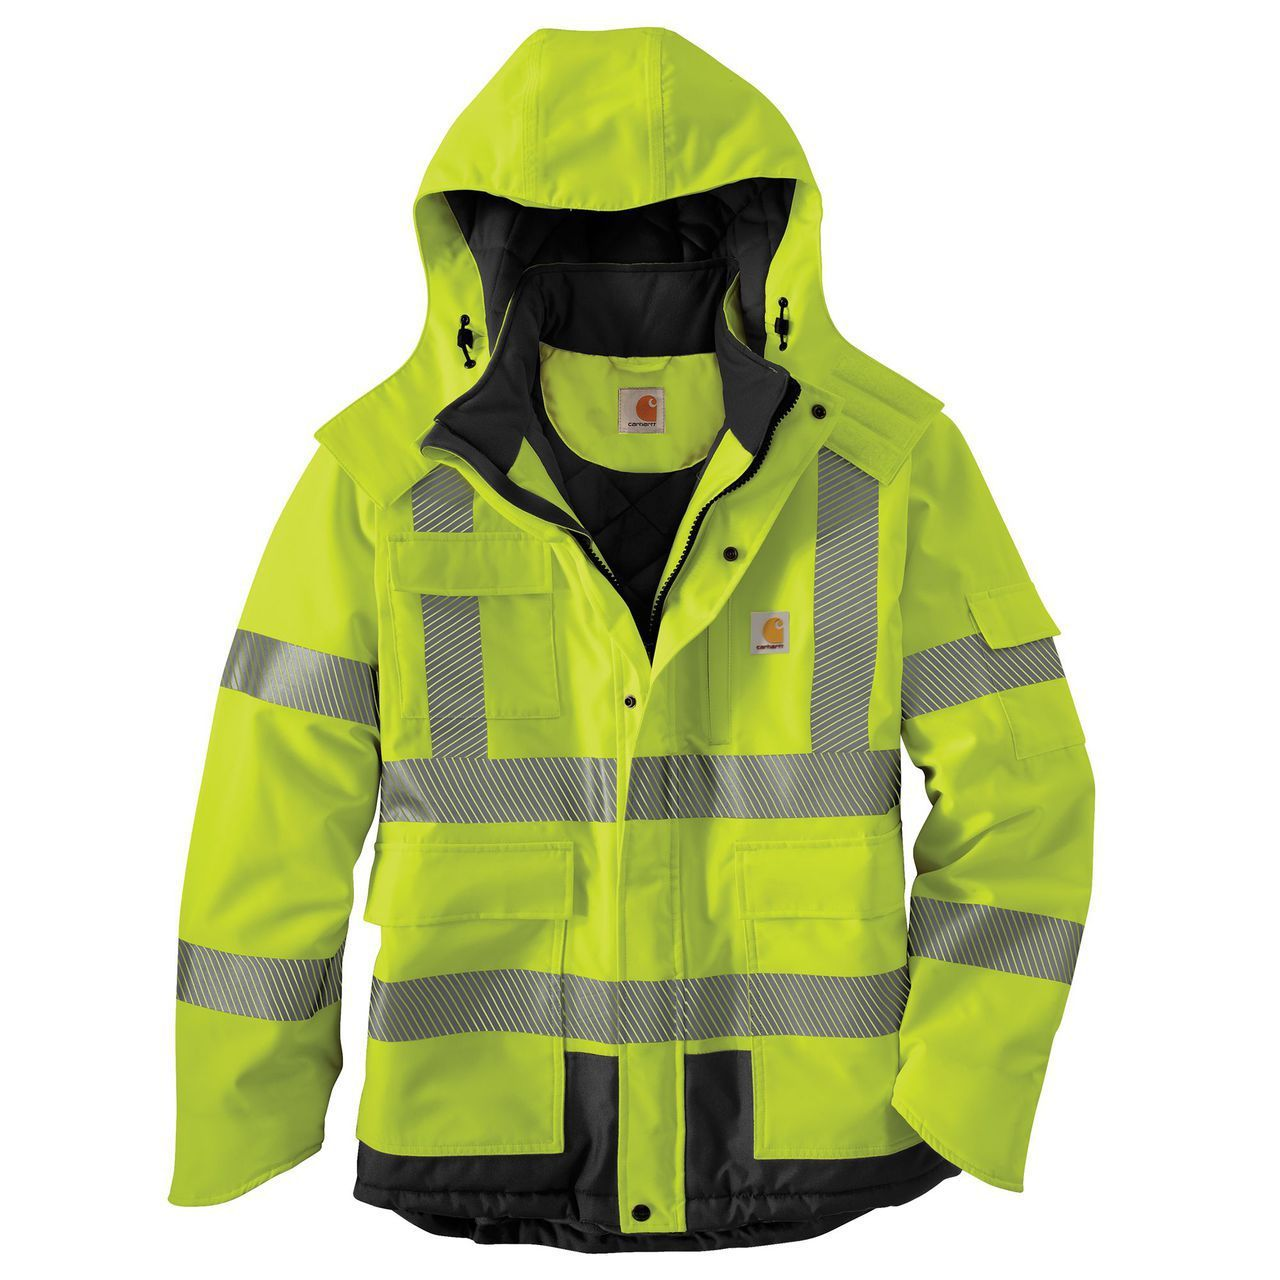 High visibility class 3 waterproof sherwood jacket the